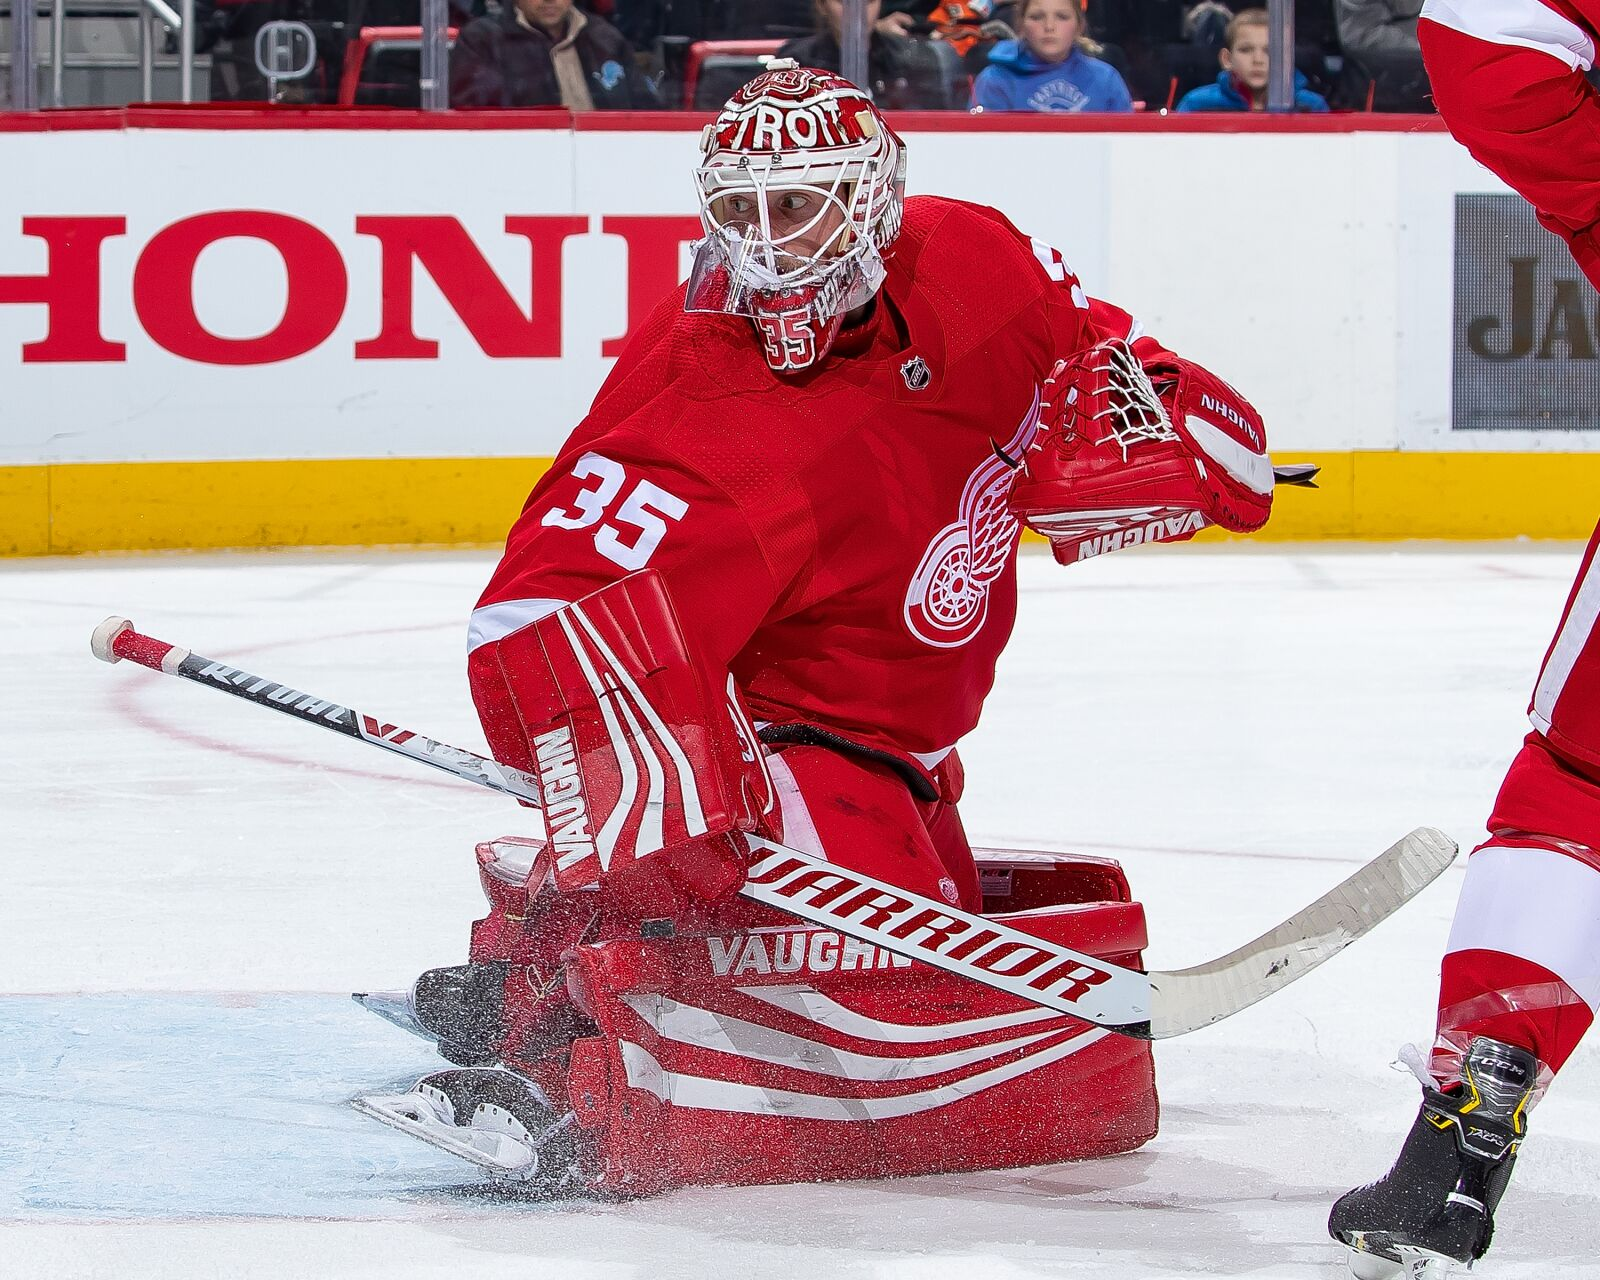 Detroit Red Wings: Jimmy Howard's trade stock plummeting